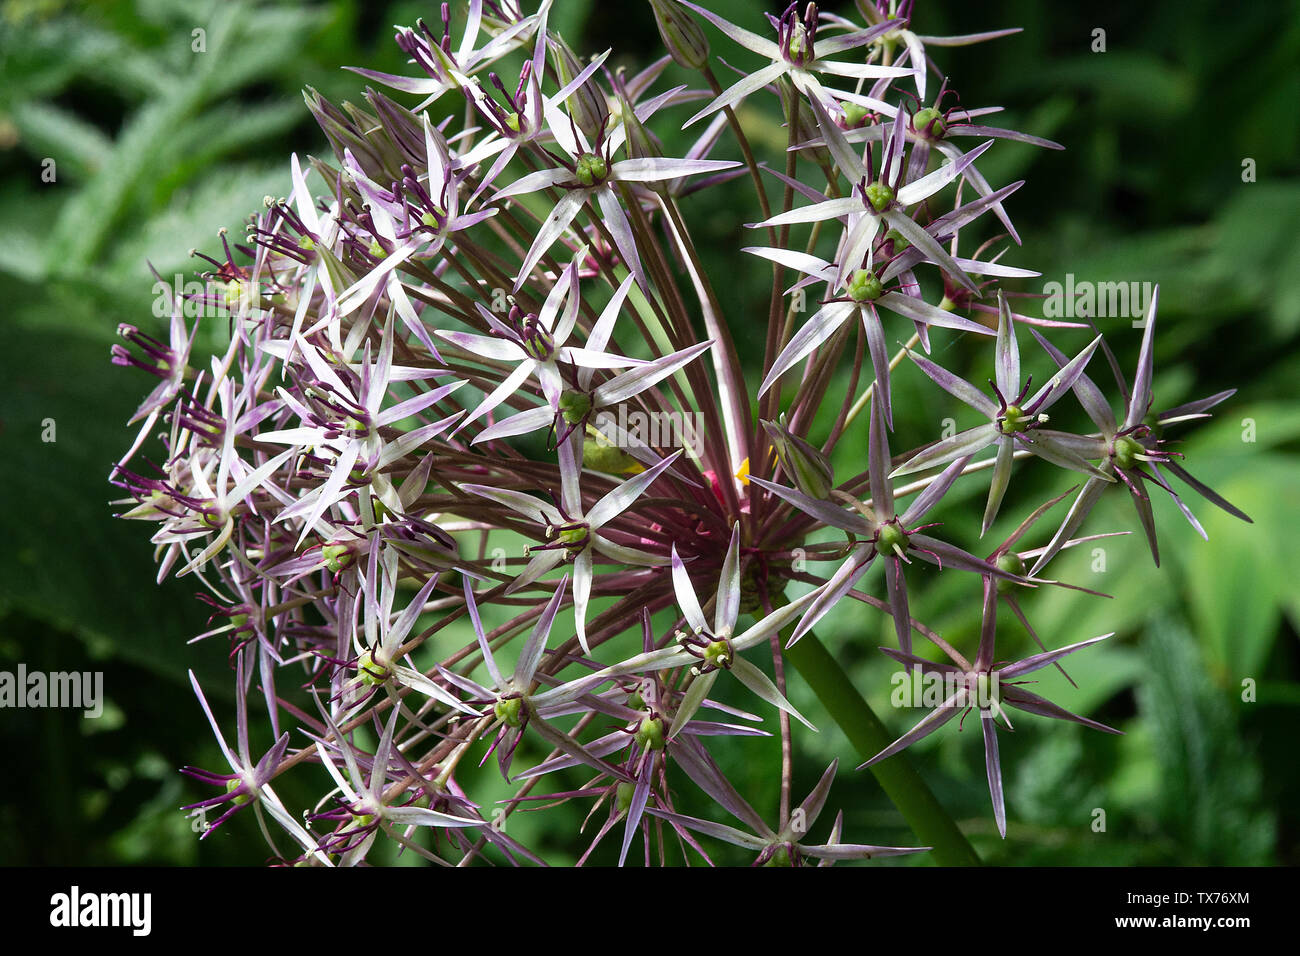 A Beautiful Allium Flower Head Bloom  in Late Flowering with Star Shaped Miniature Heads in a Garden in Alsager Cheshire England United Kingdom UK - Stock Image